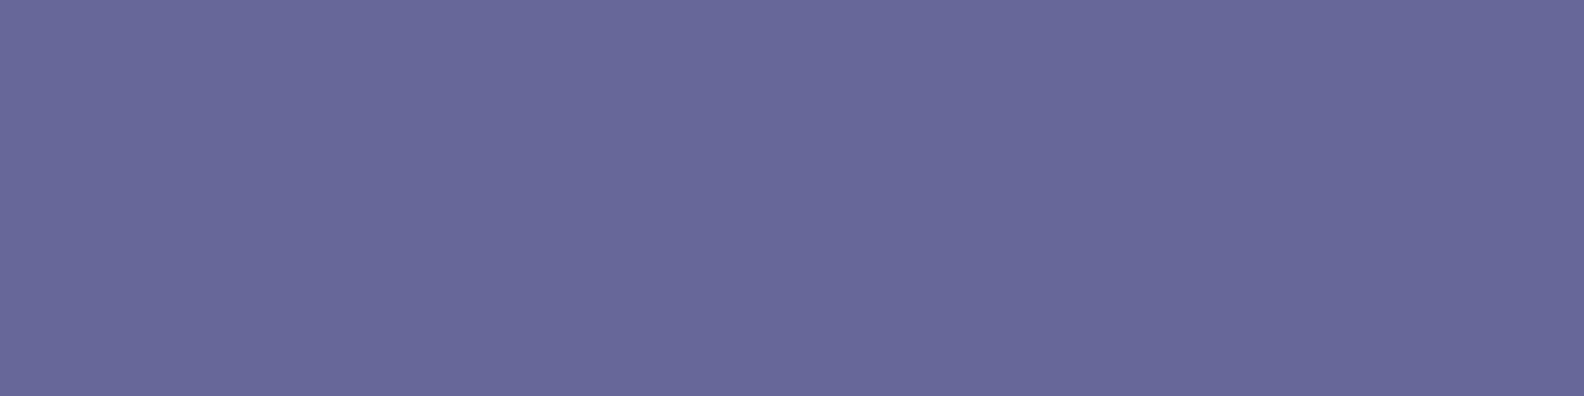 1584x396 Dark Blue-gray Solid Color Background